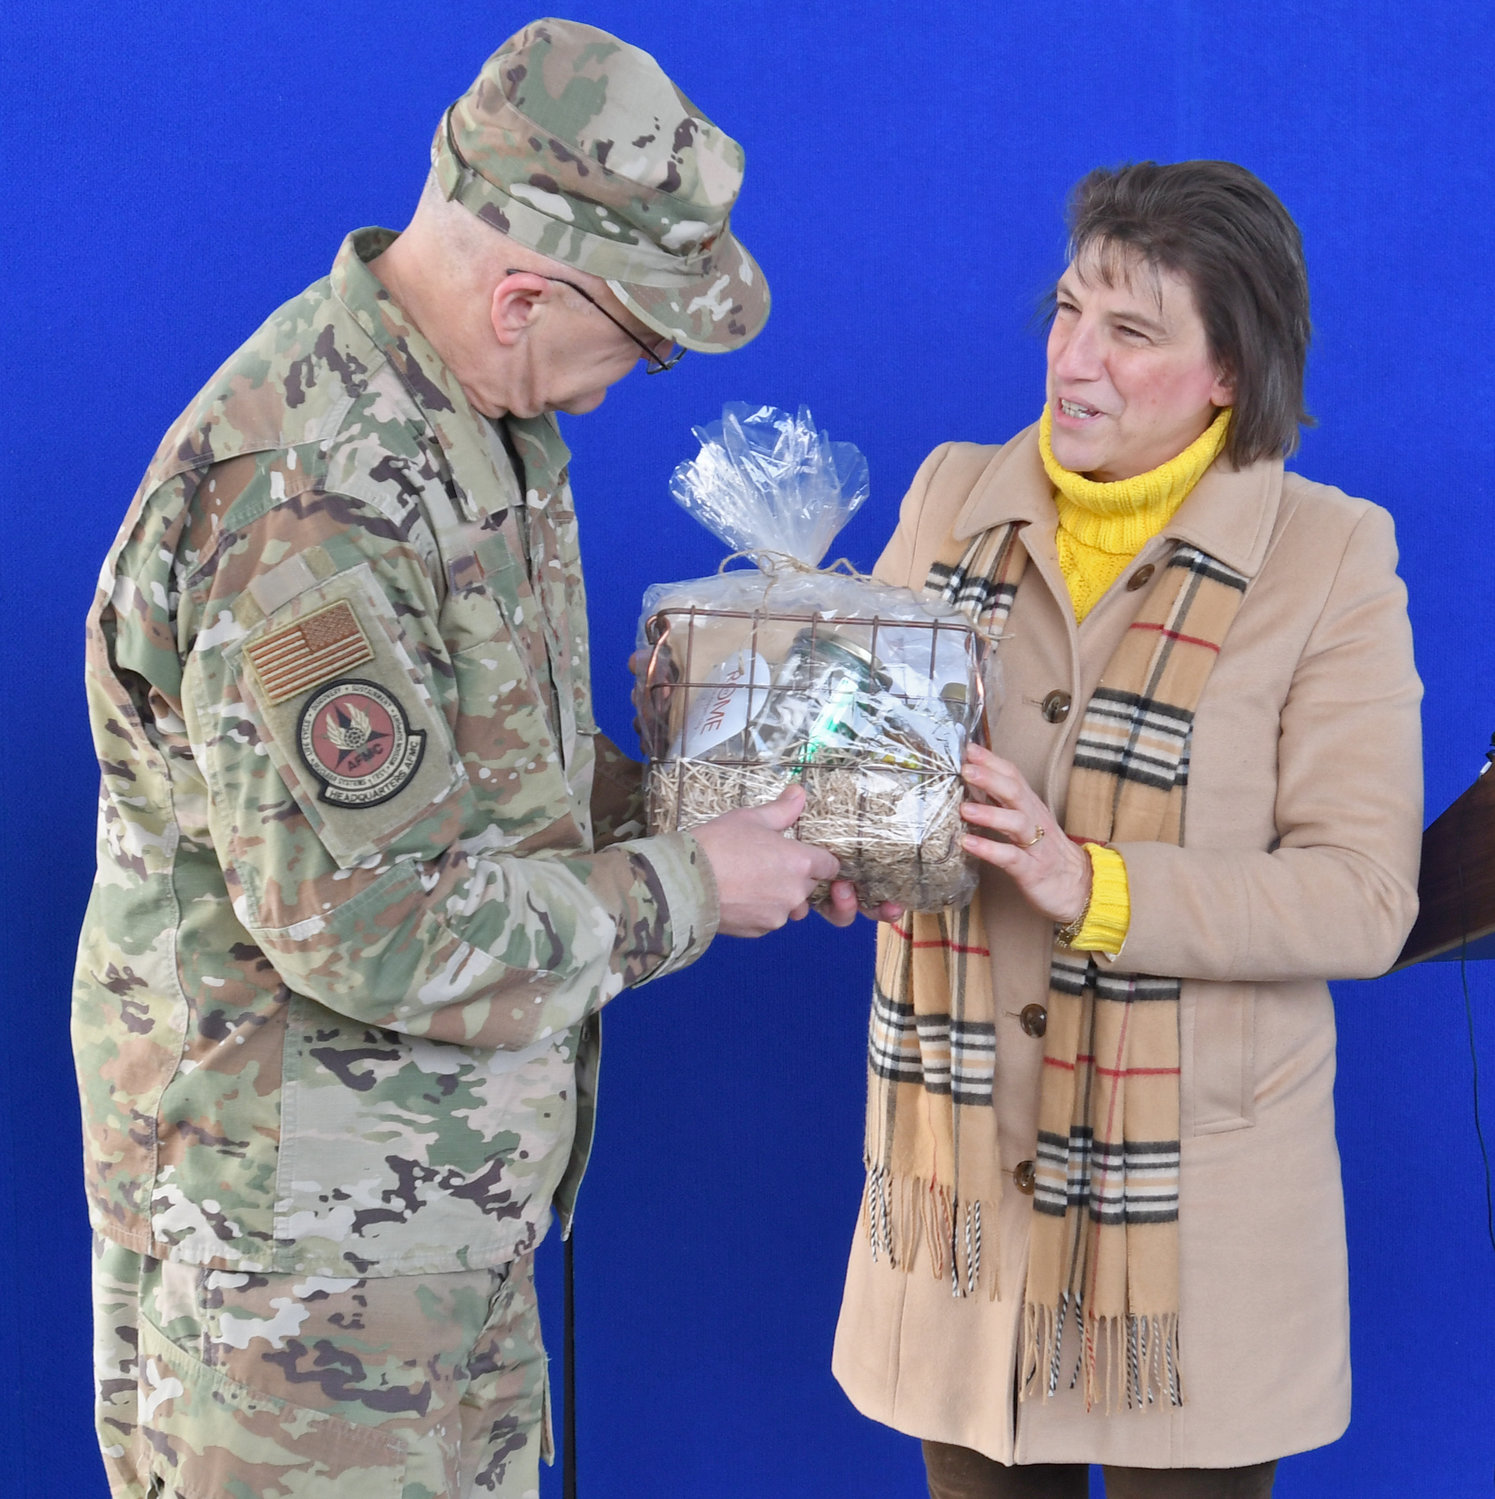 "SOMETHING FOR THE GENERAL — During a groundbreaking ceremony Wednesday for a new perimeter security system at the Air Force's Rome Lab, Rome Mayor Jacqueline M. Izzo presents Air Force four-star Gen. Arnold W. Bunch, Jr. with a gift basket containing ""all things Rome."" Among some of the enclosed items were turkey joints, Broasters Coffee, locally made maple syrup and honey, and a Rome sticker. Bunch is commander of Air Force Materiel Command."